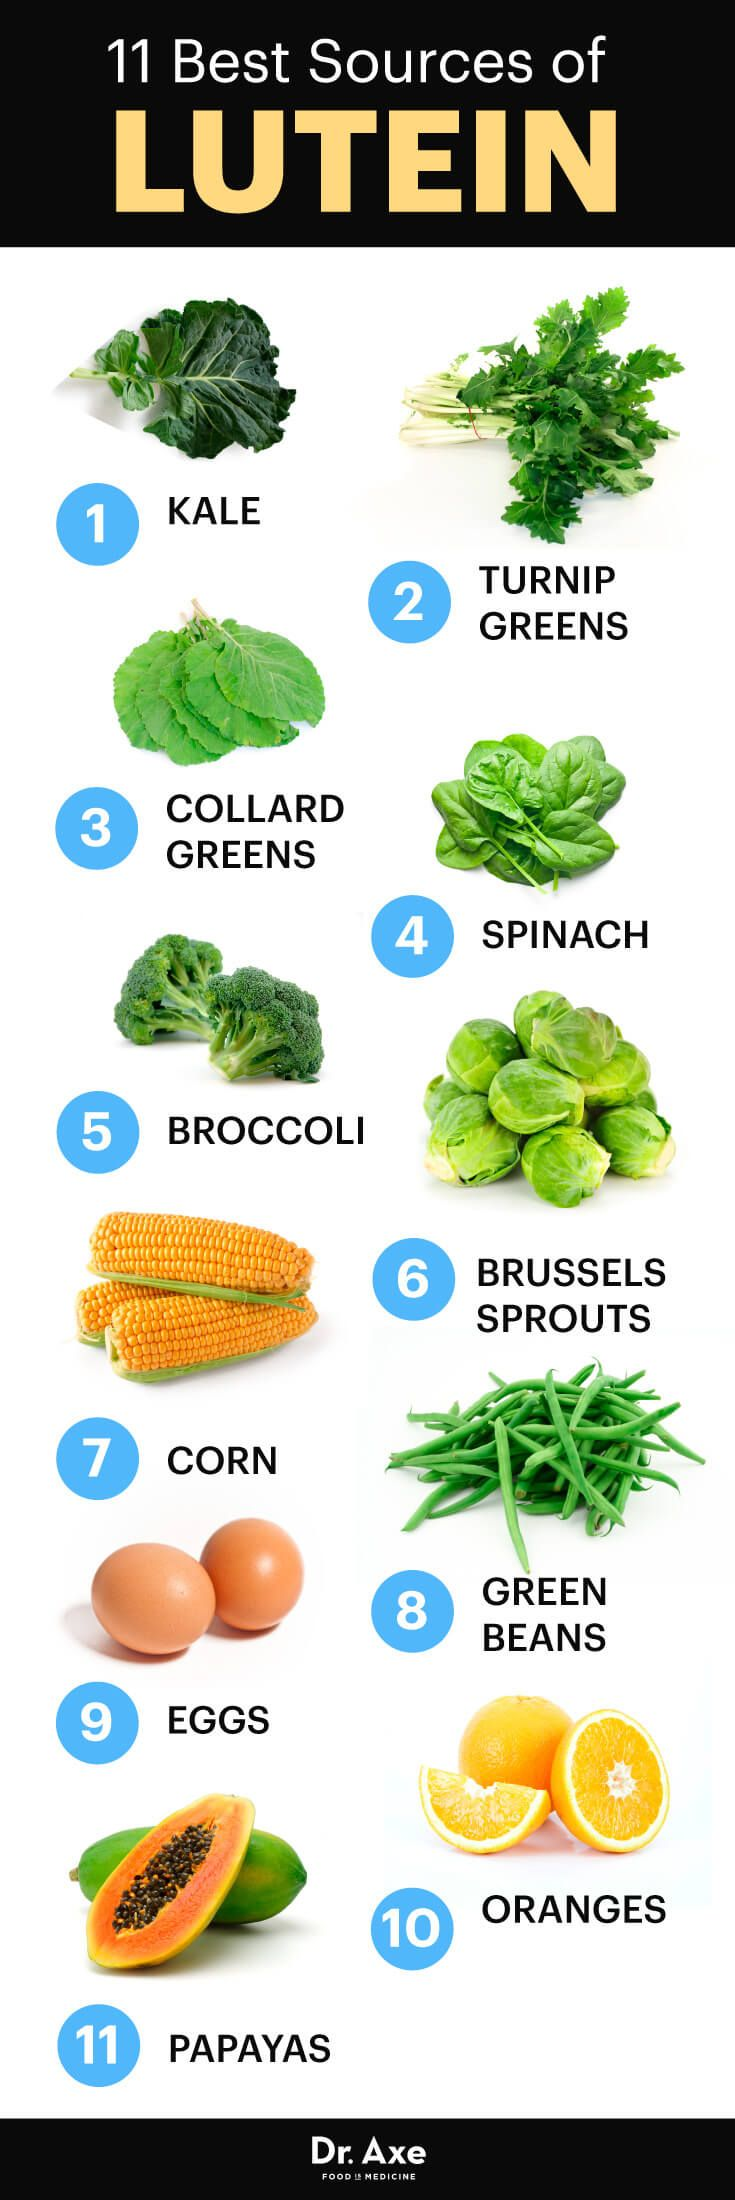 Lutein: The Antioxidant that Protects Your Eyes & Skin!